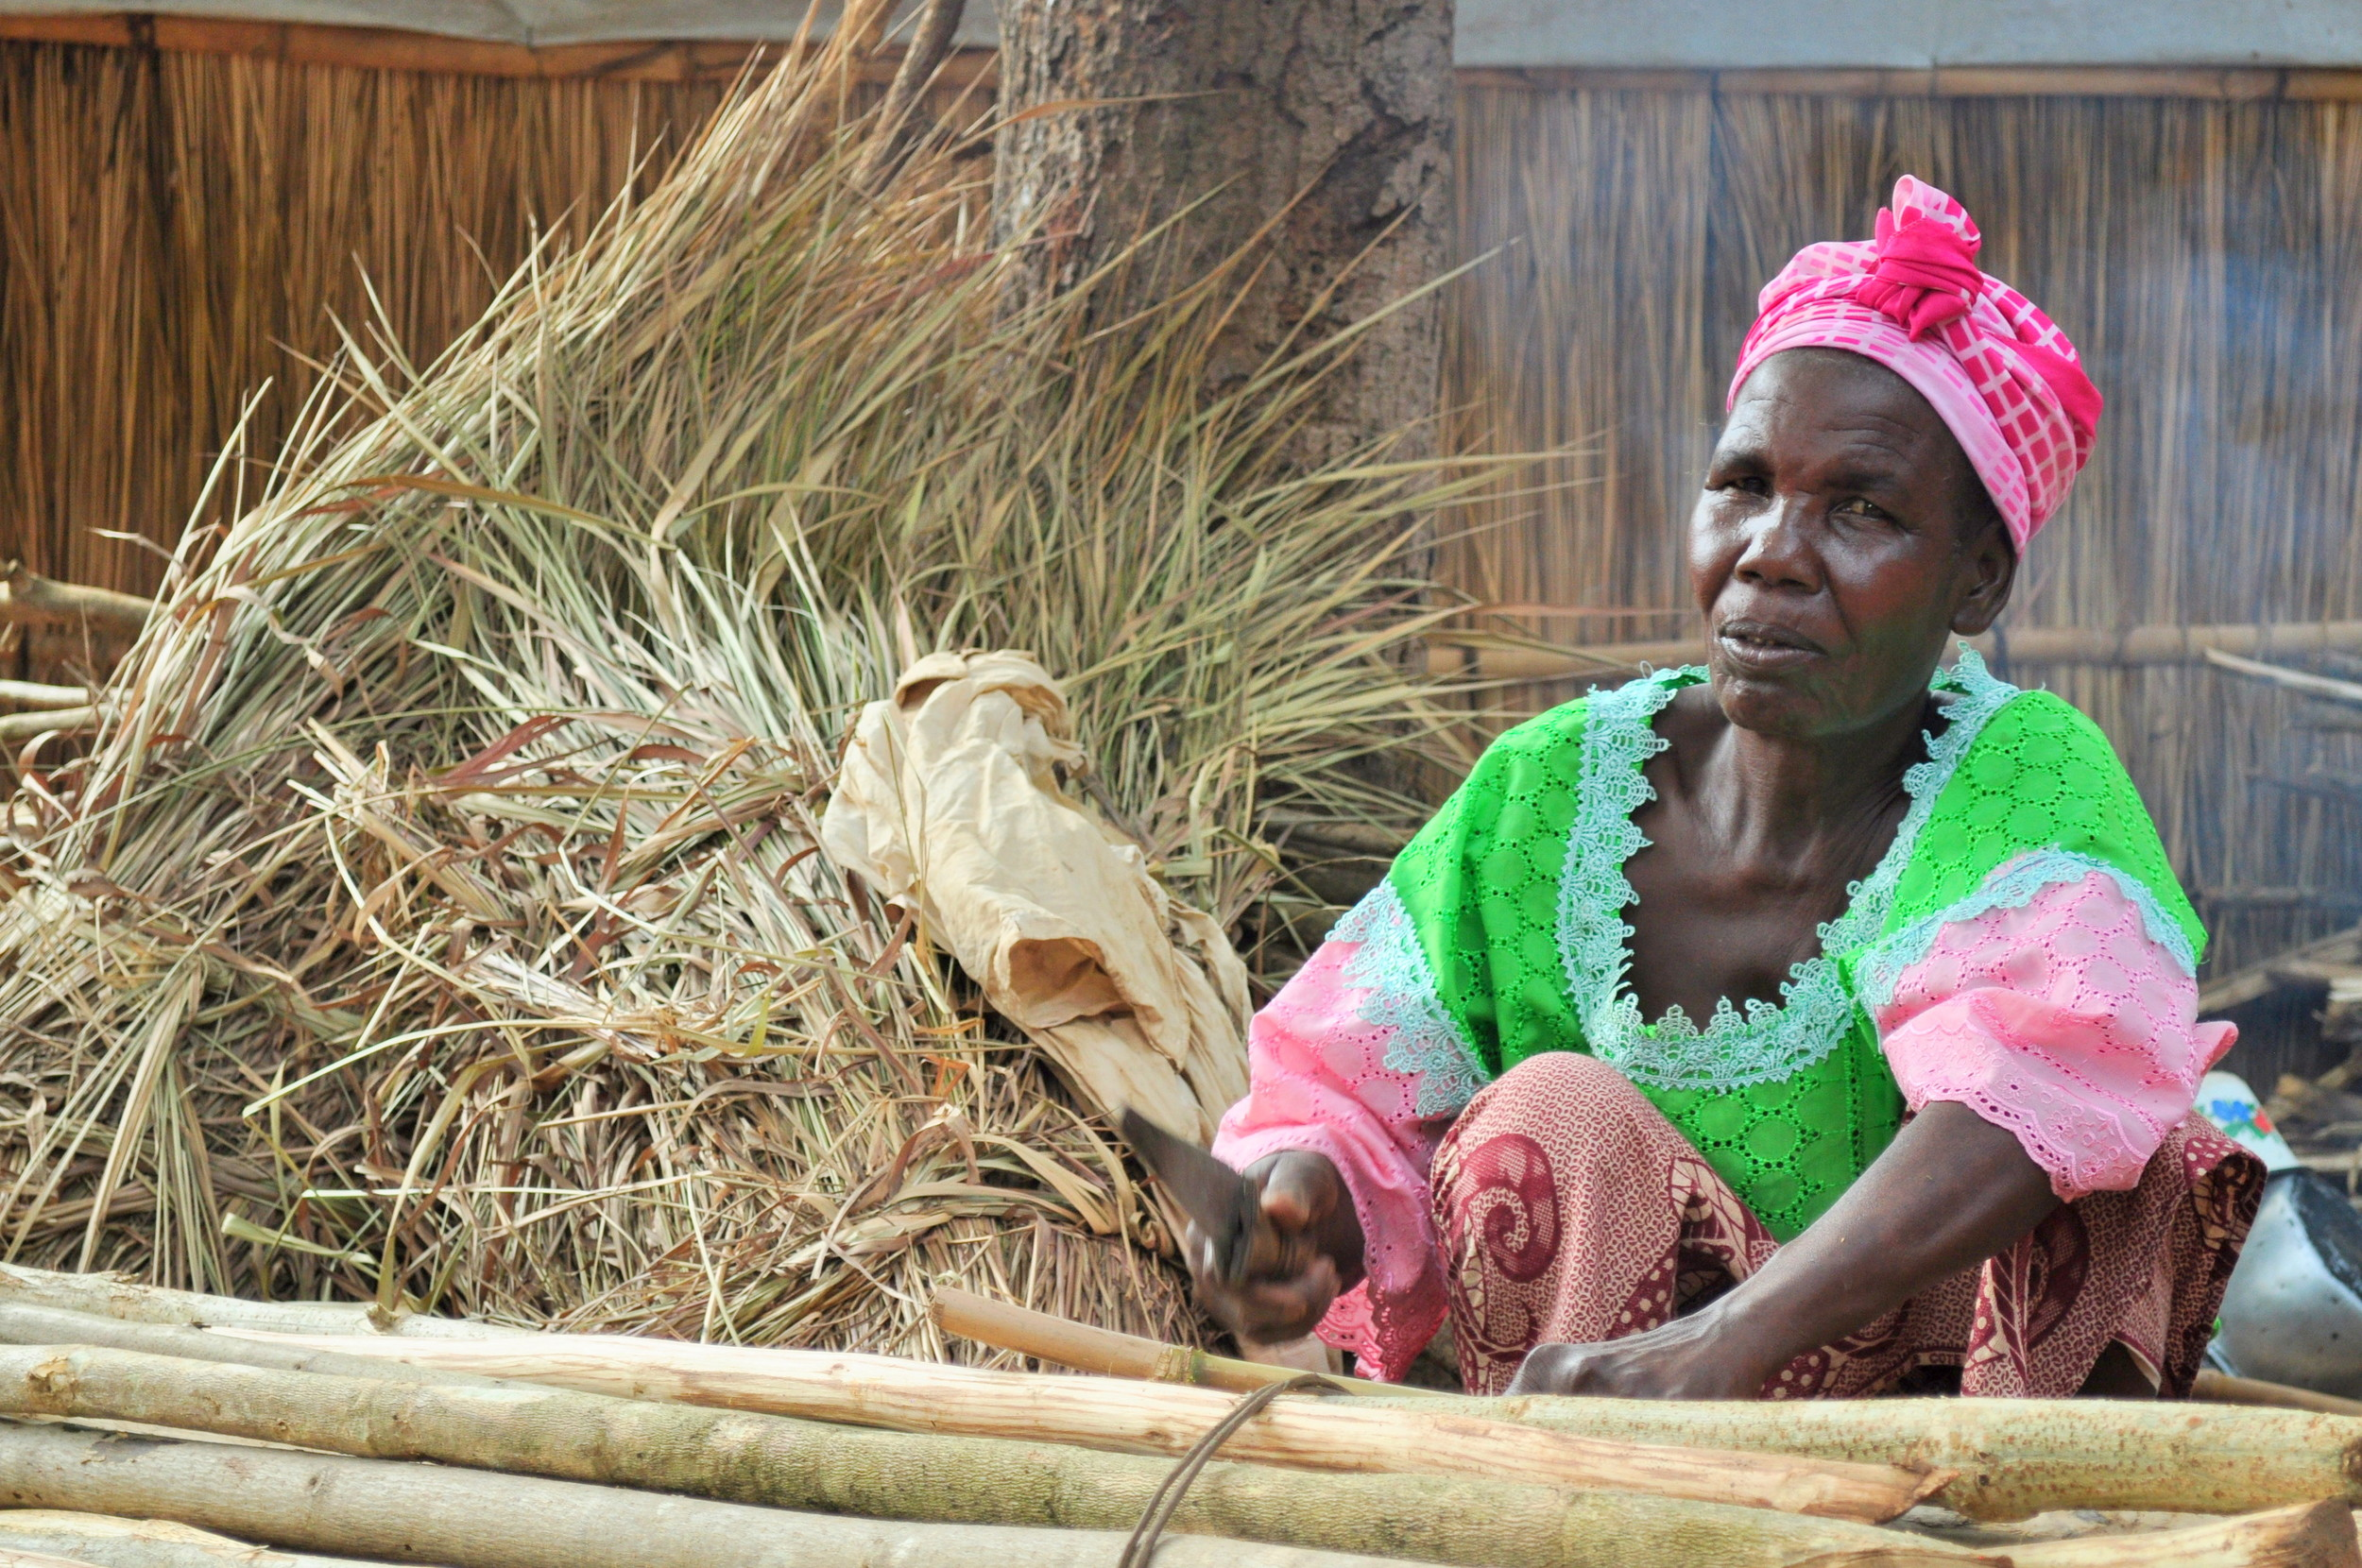 Though many people have lost their jobs, some women in the camps collect and sell firewood to earn money.